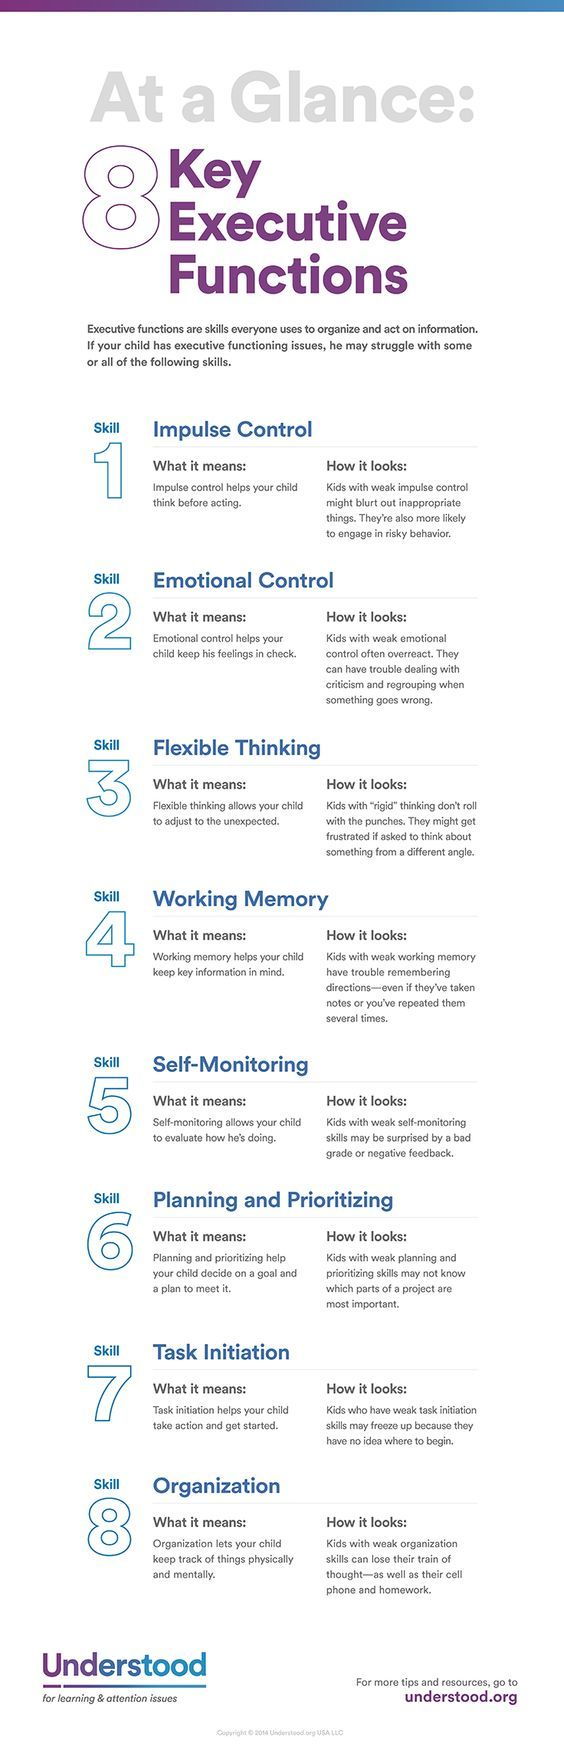 at a glance key executive functions look at executive executive functions let people plan organize and complete tasks here s a closer look at this important set of skills and how executive functioning issues